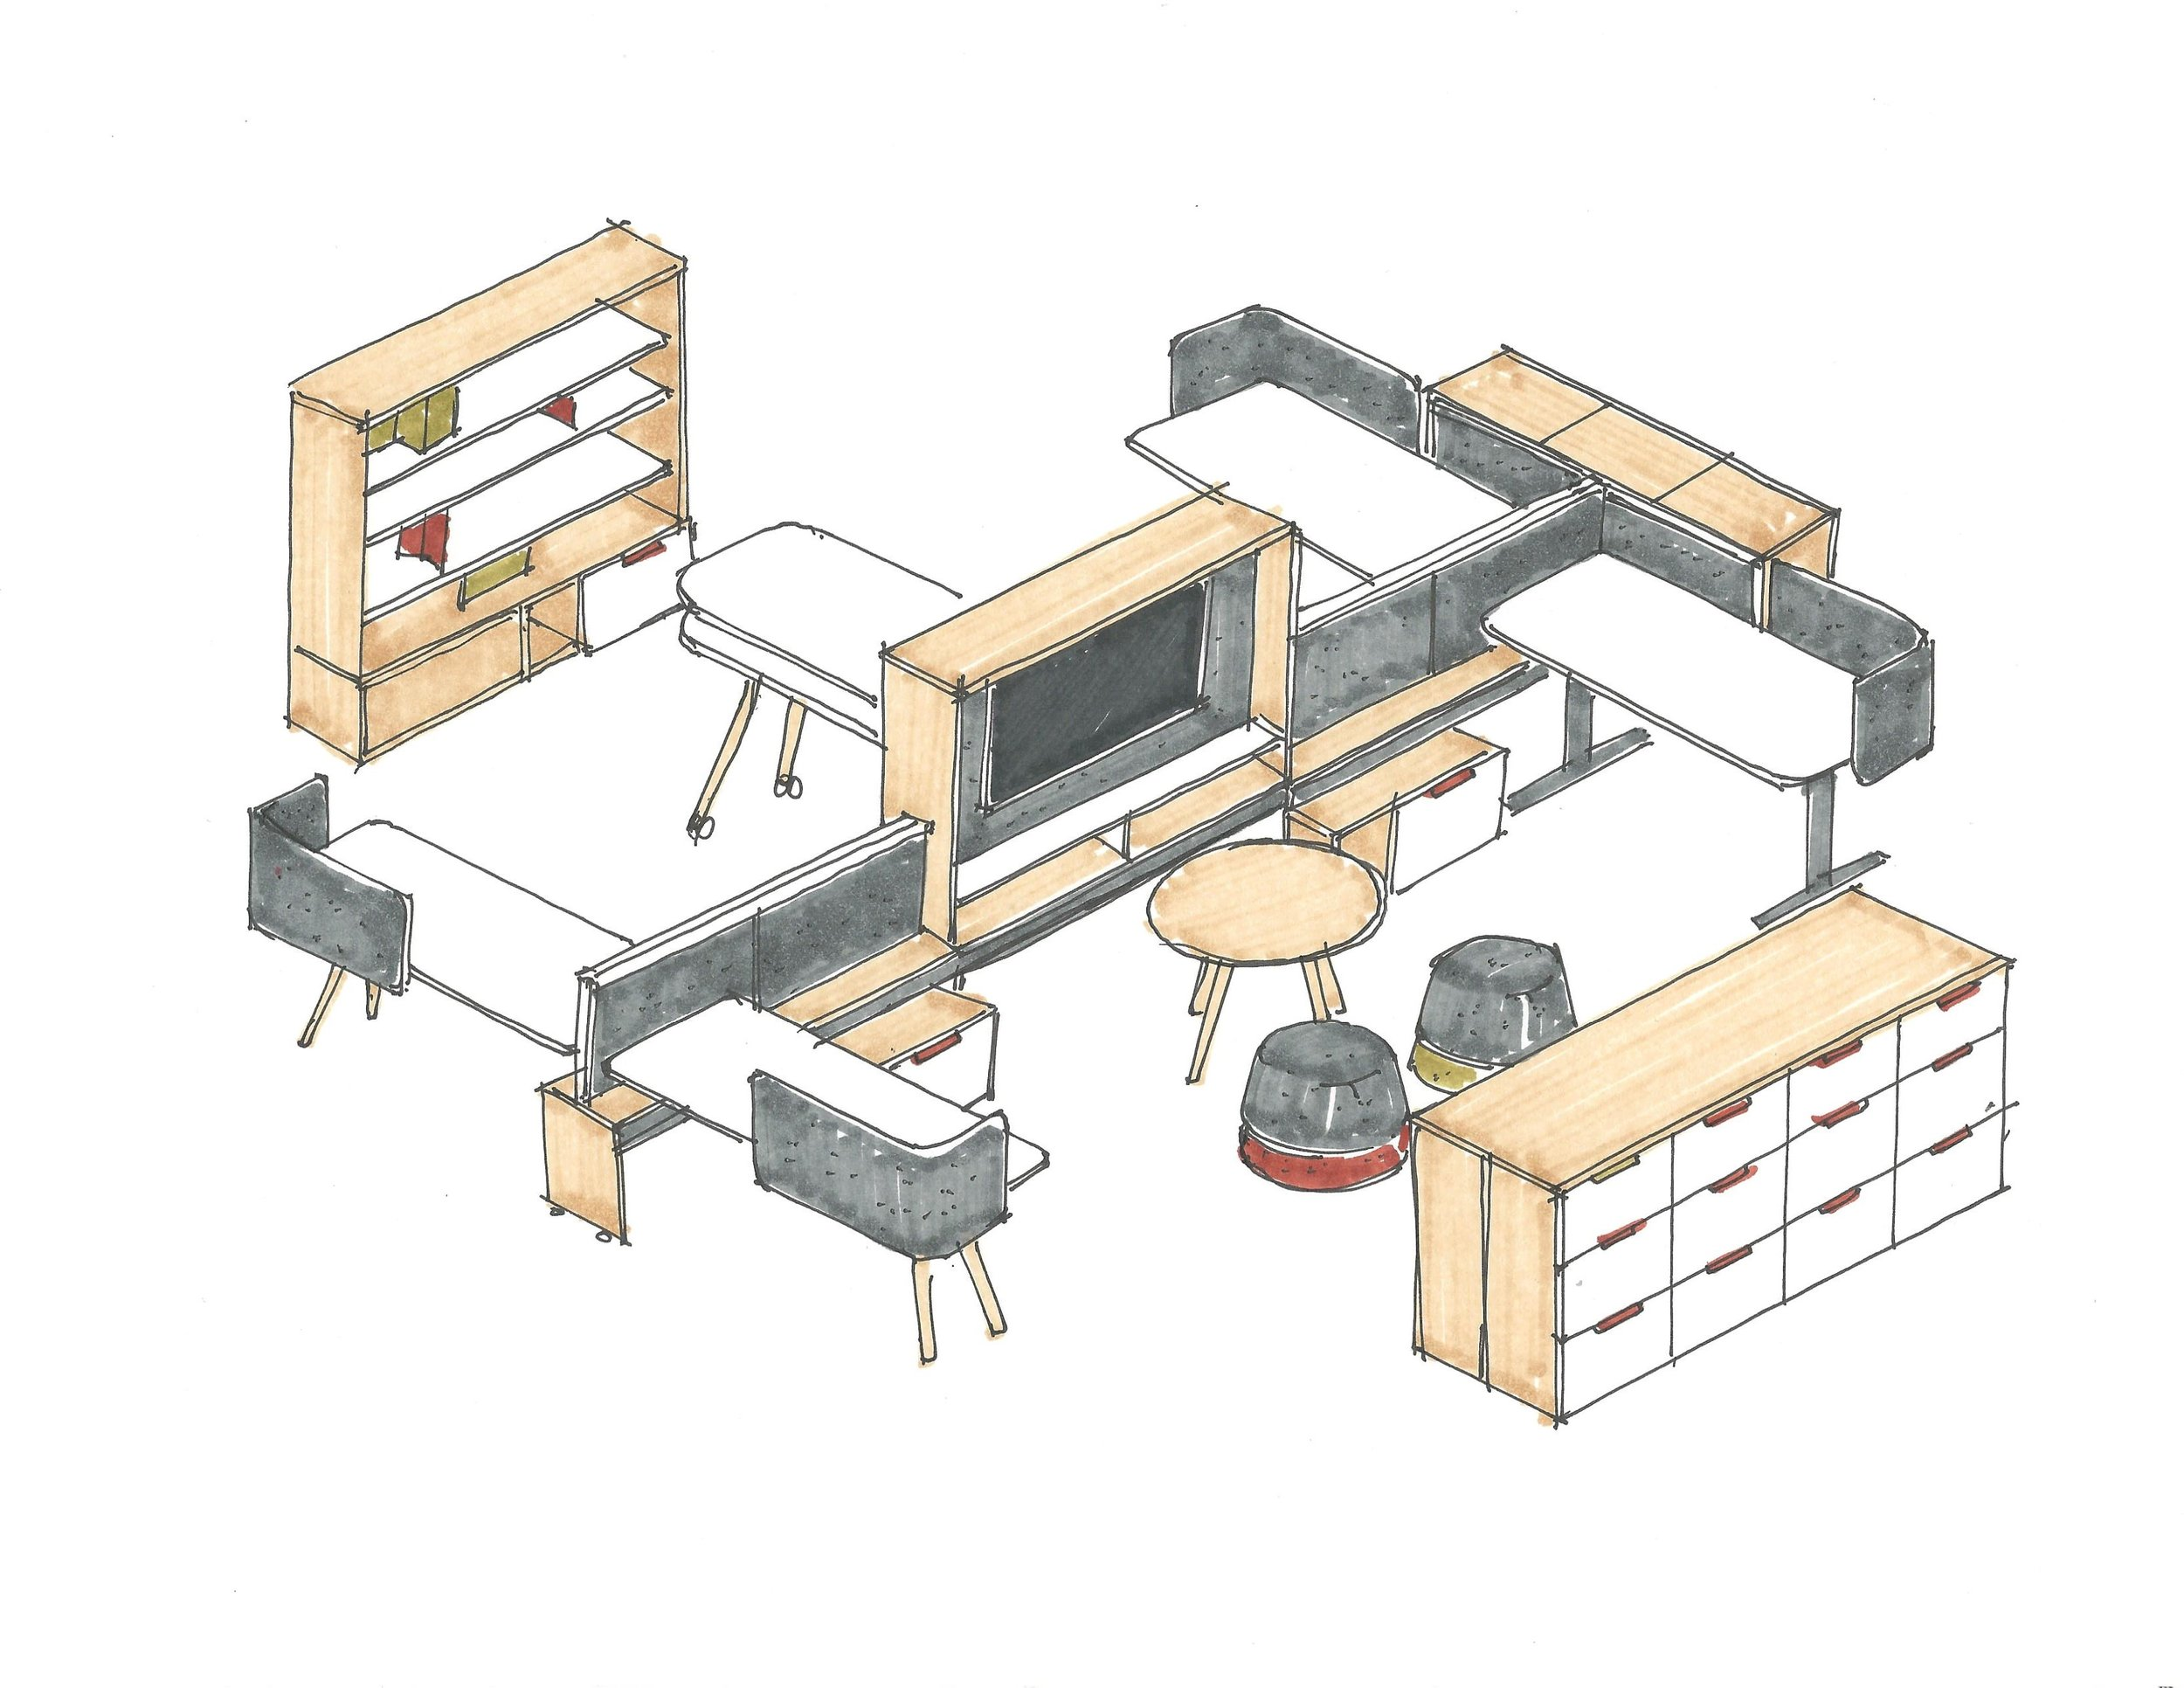 A layout of upStage configured to suit a set of client needs.